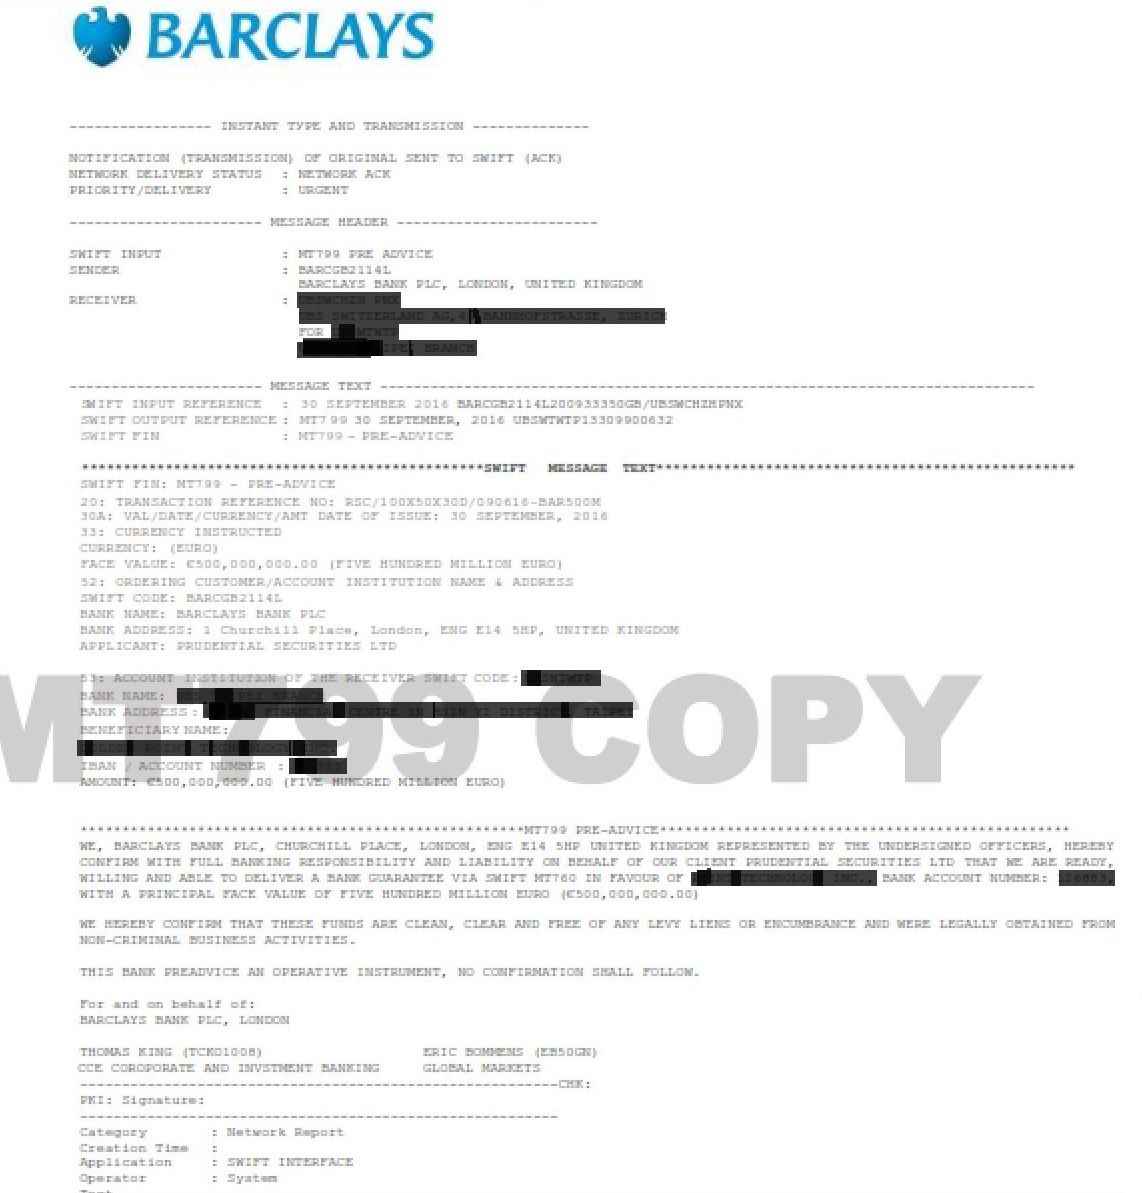 barclays swift code